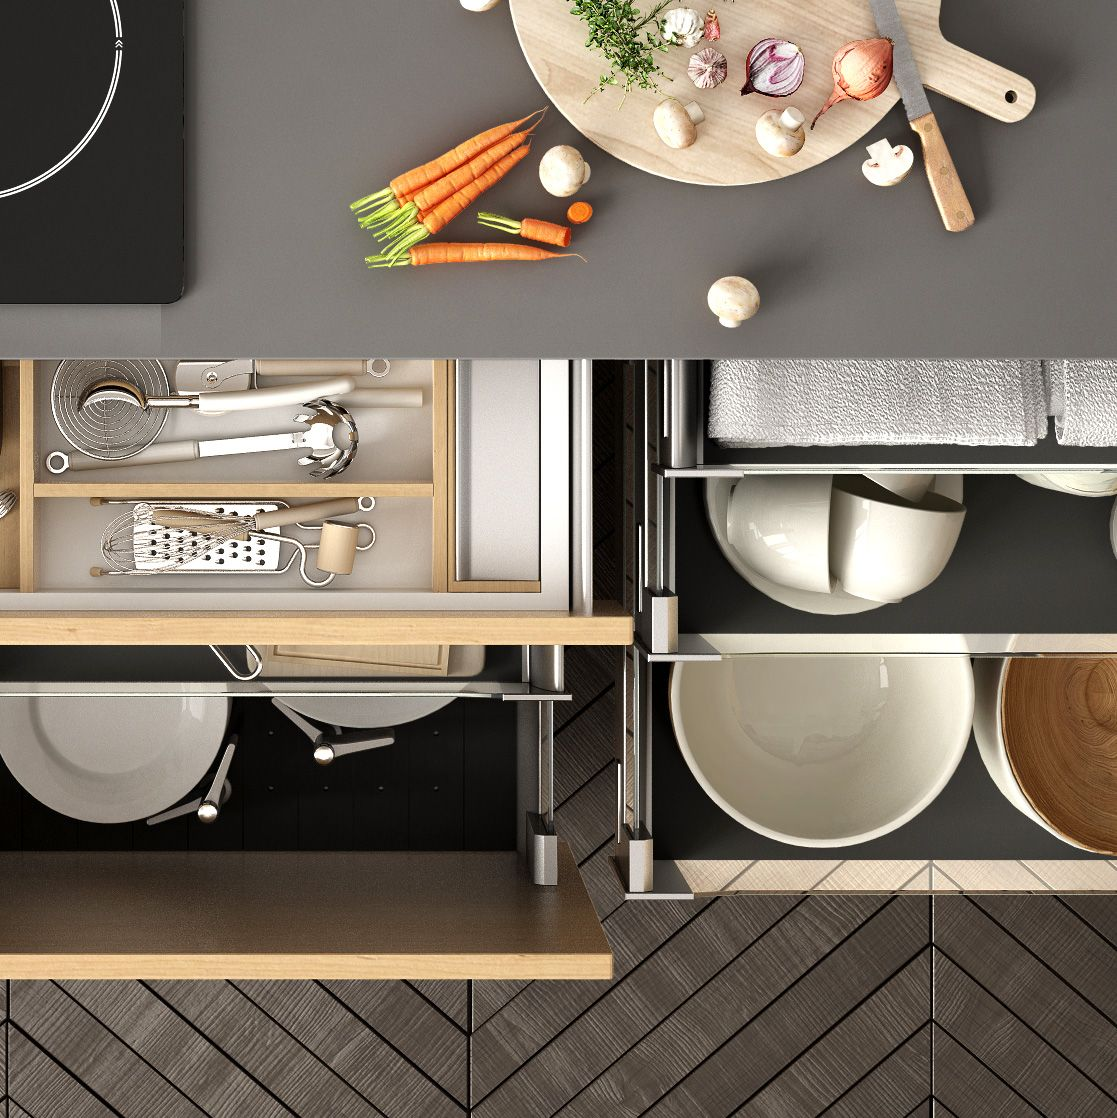 12 Genius Kitchen Drawer and Cabinet Organizers to Get Your Home in Order & 12 Best Kitchen Cabinet Drawers - Clever Ways to Organize Kitchen ...